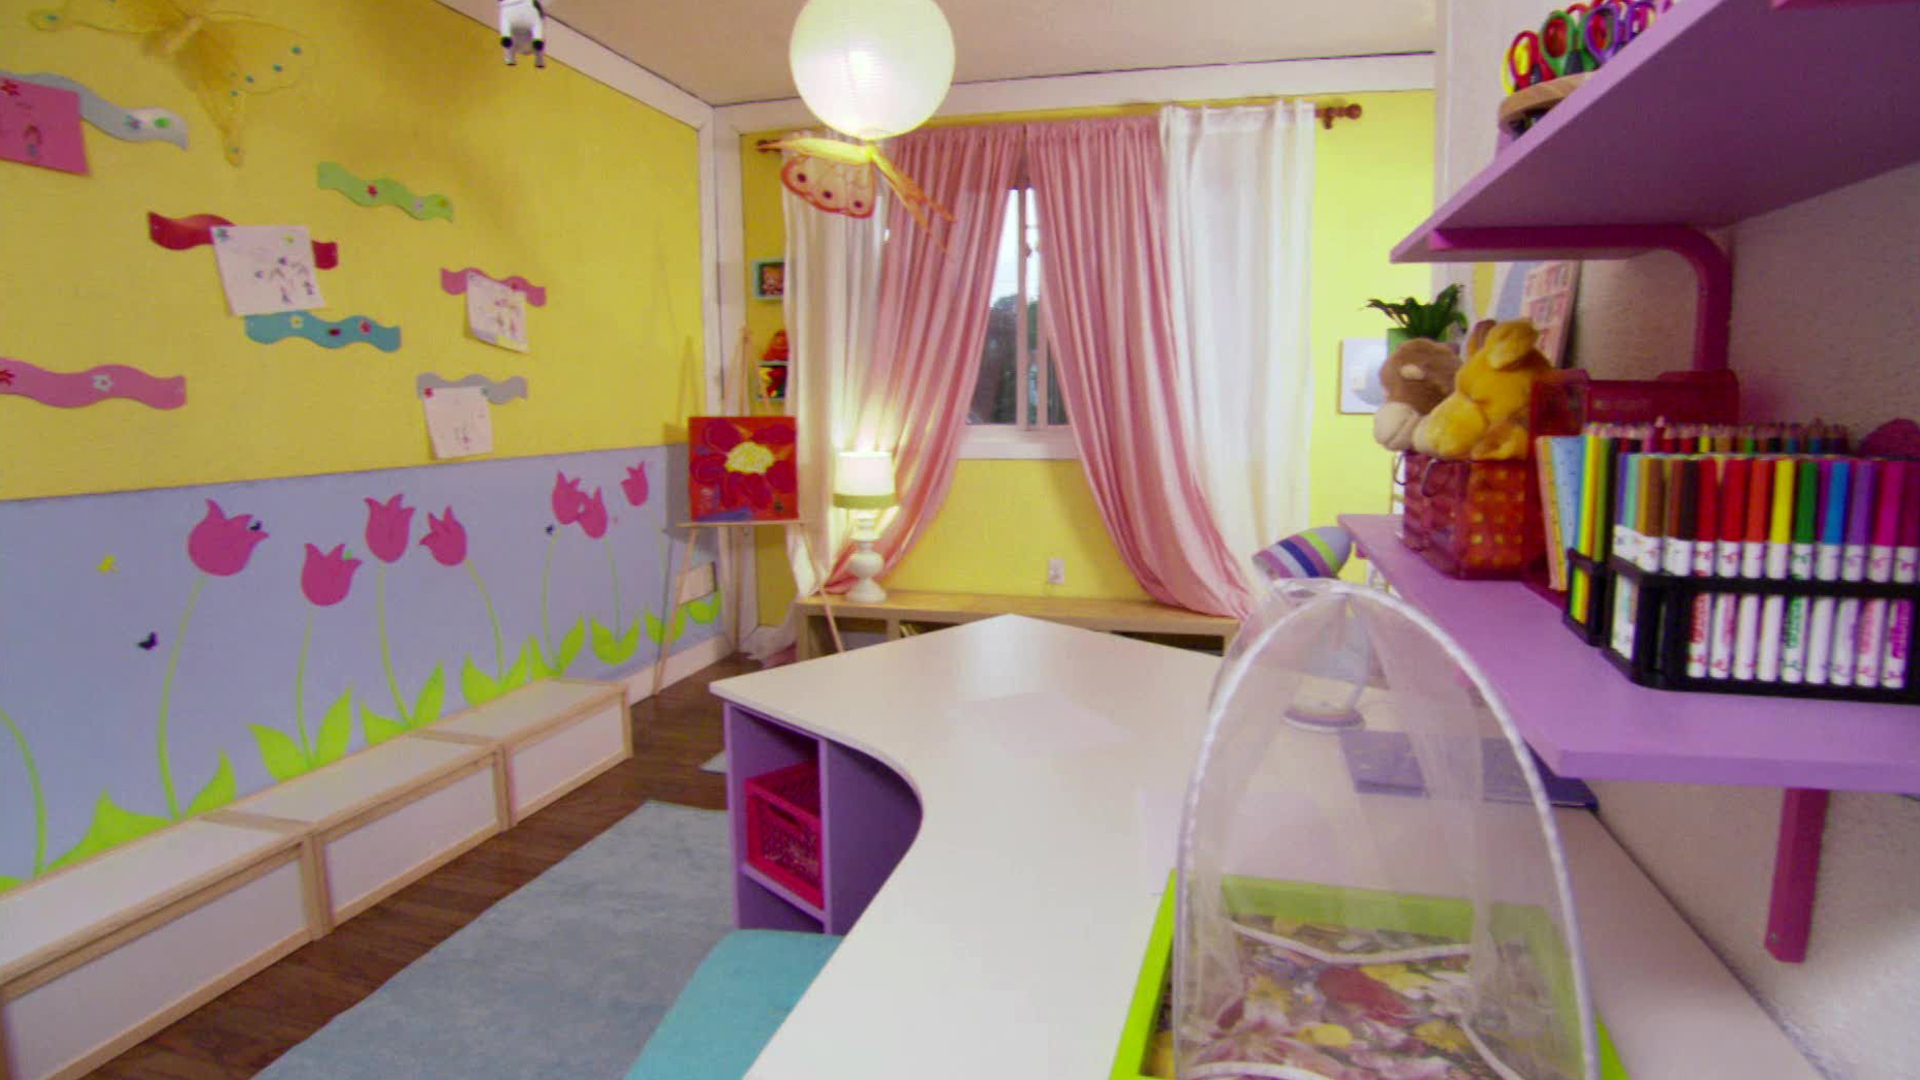 Playrooms Ideas Playroom Ideas Pictures & Makeovers  Hgtv